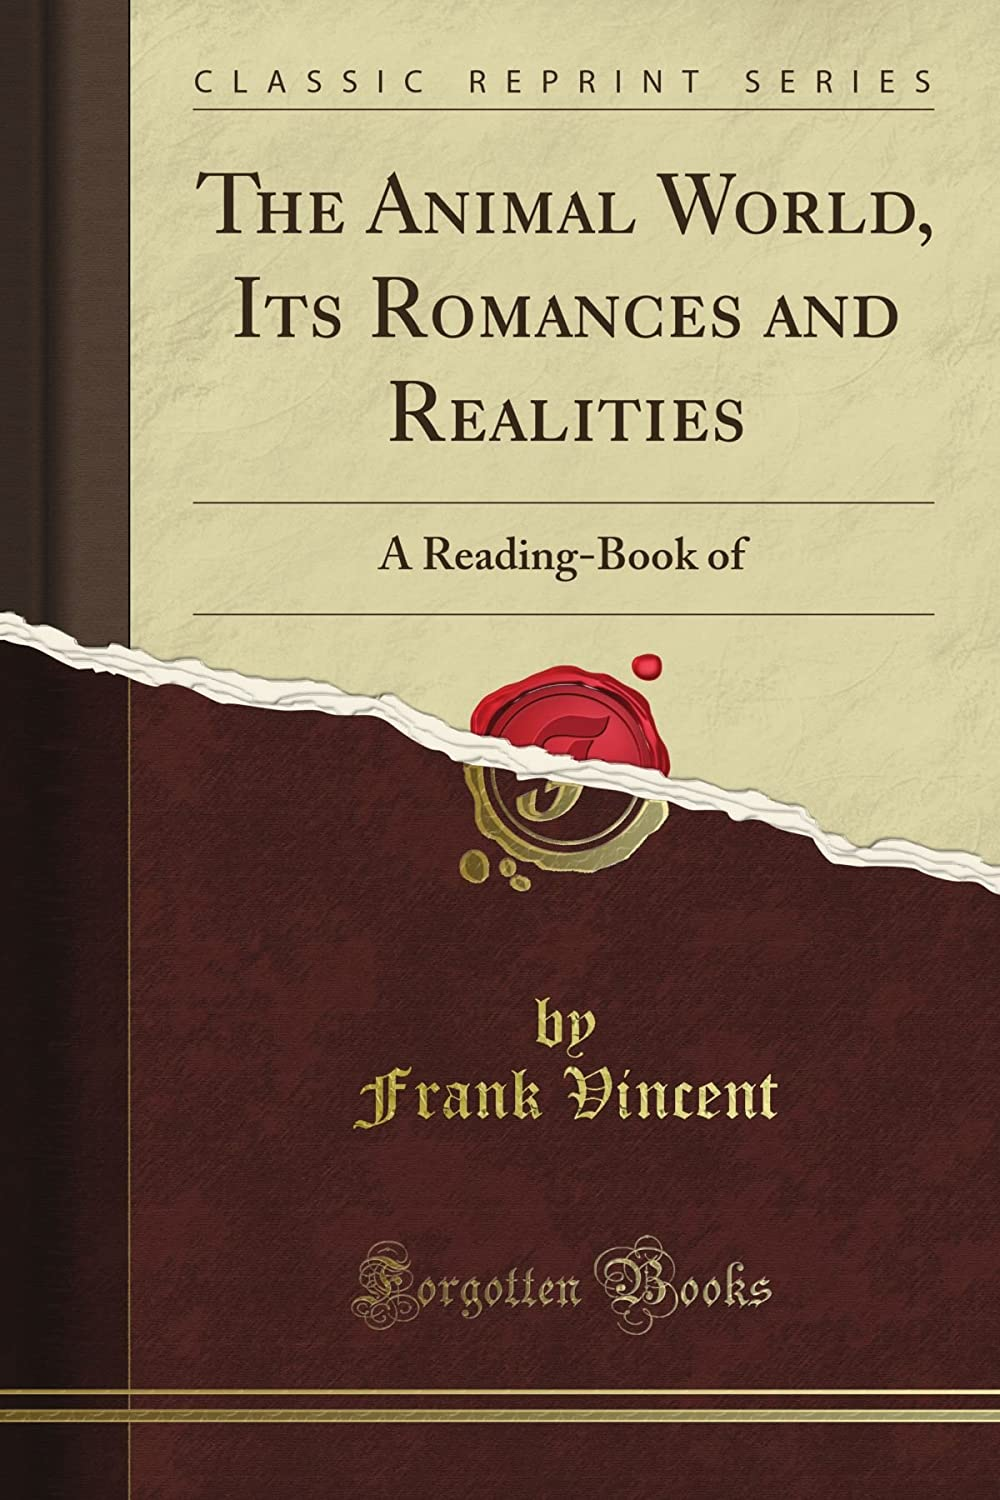 The Animal World, Its Romances and Realities: A Reading-Book of (Classic Reprint)